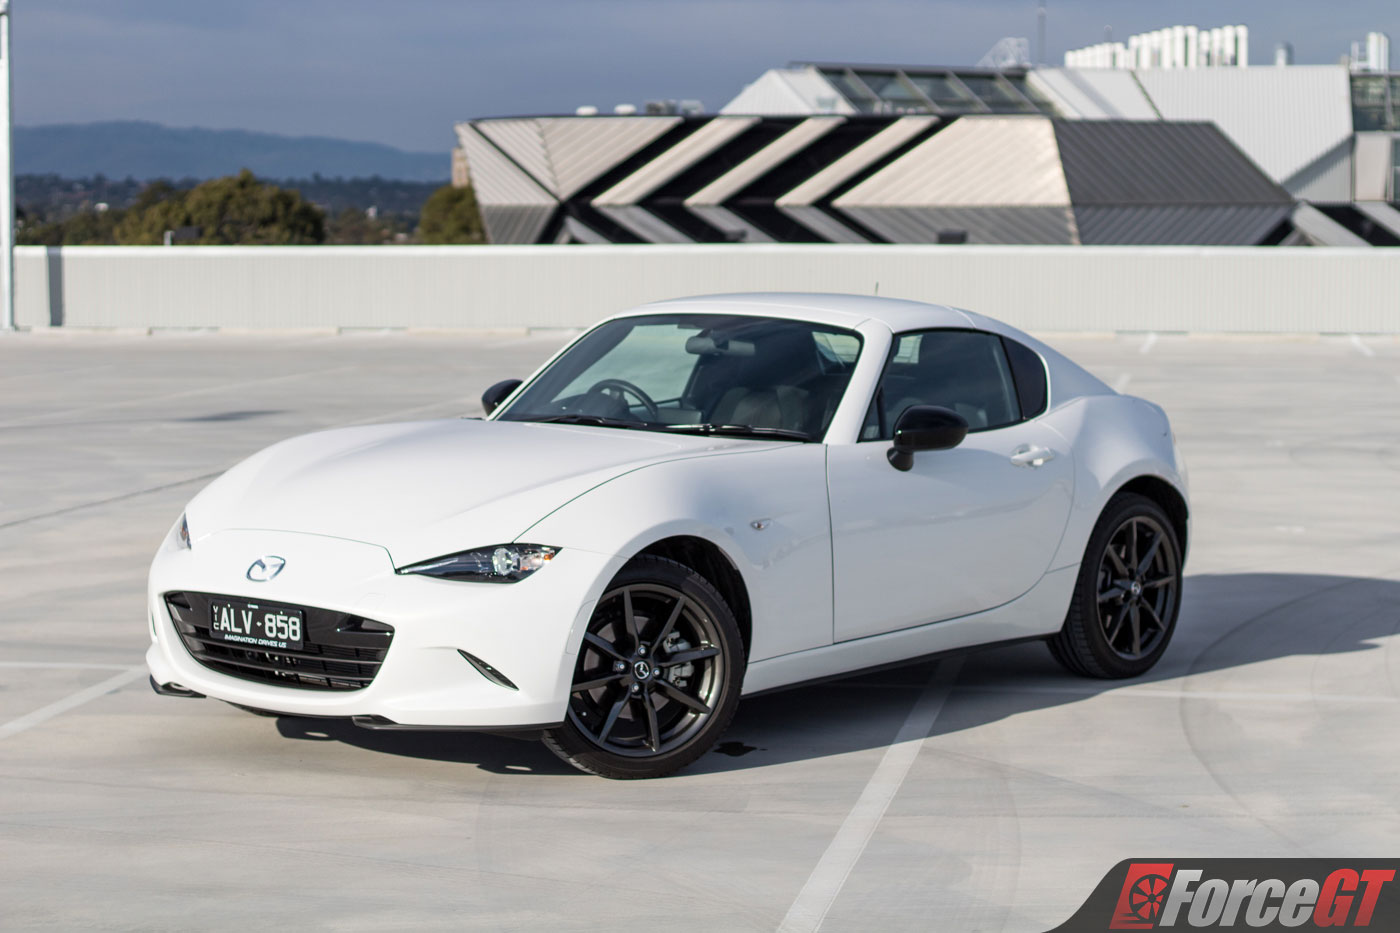 Toyota 86 Towing Capacity >> 2017 Mazda MX-5 RF Review - ForceGT.com